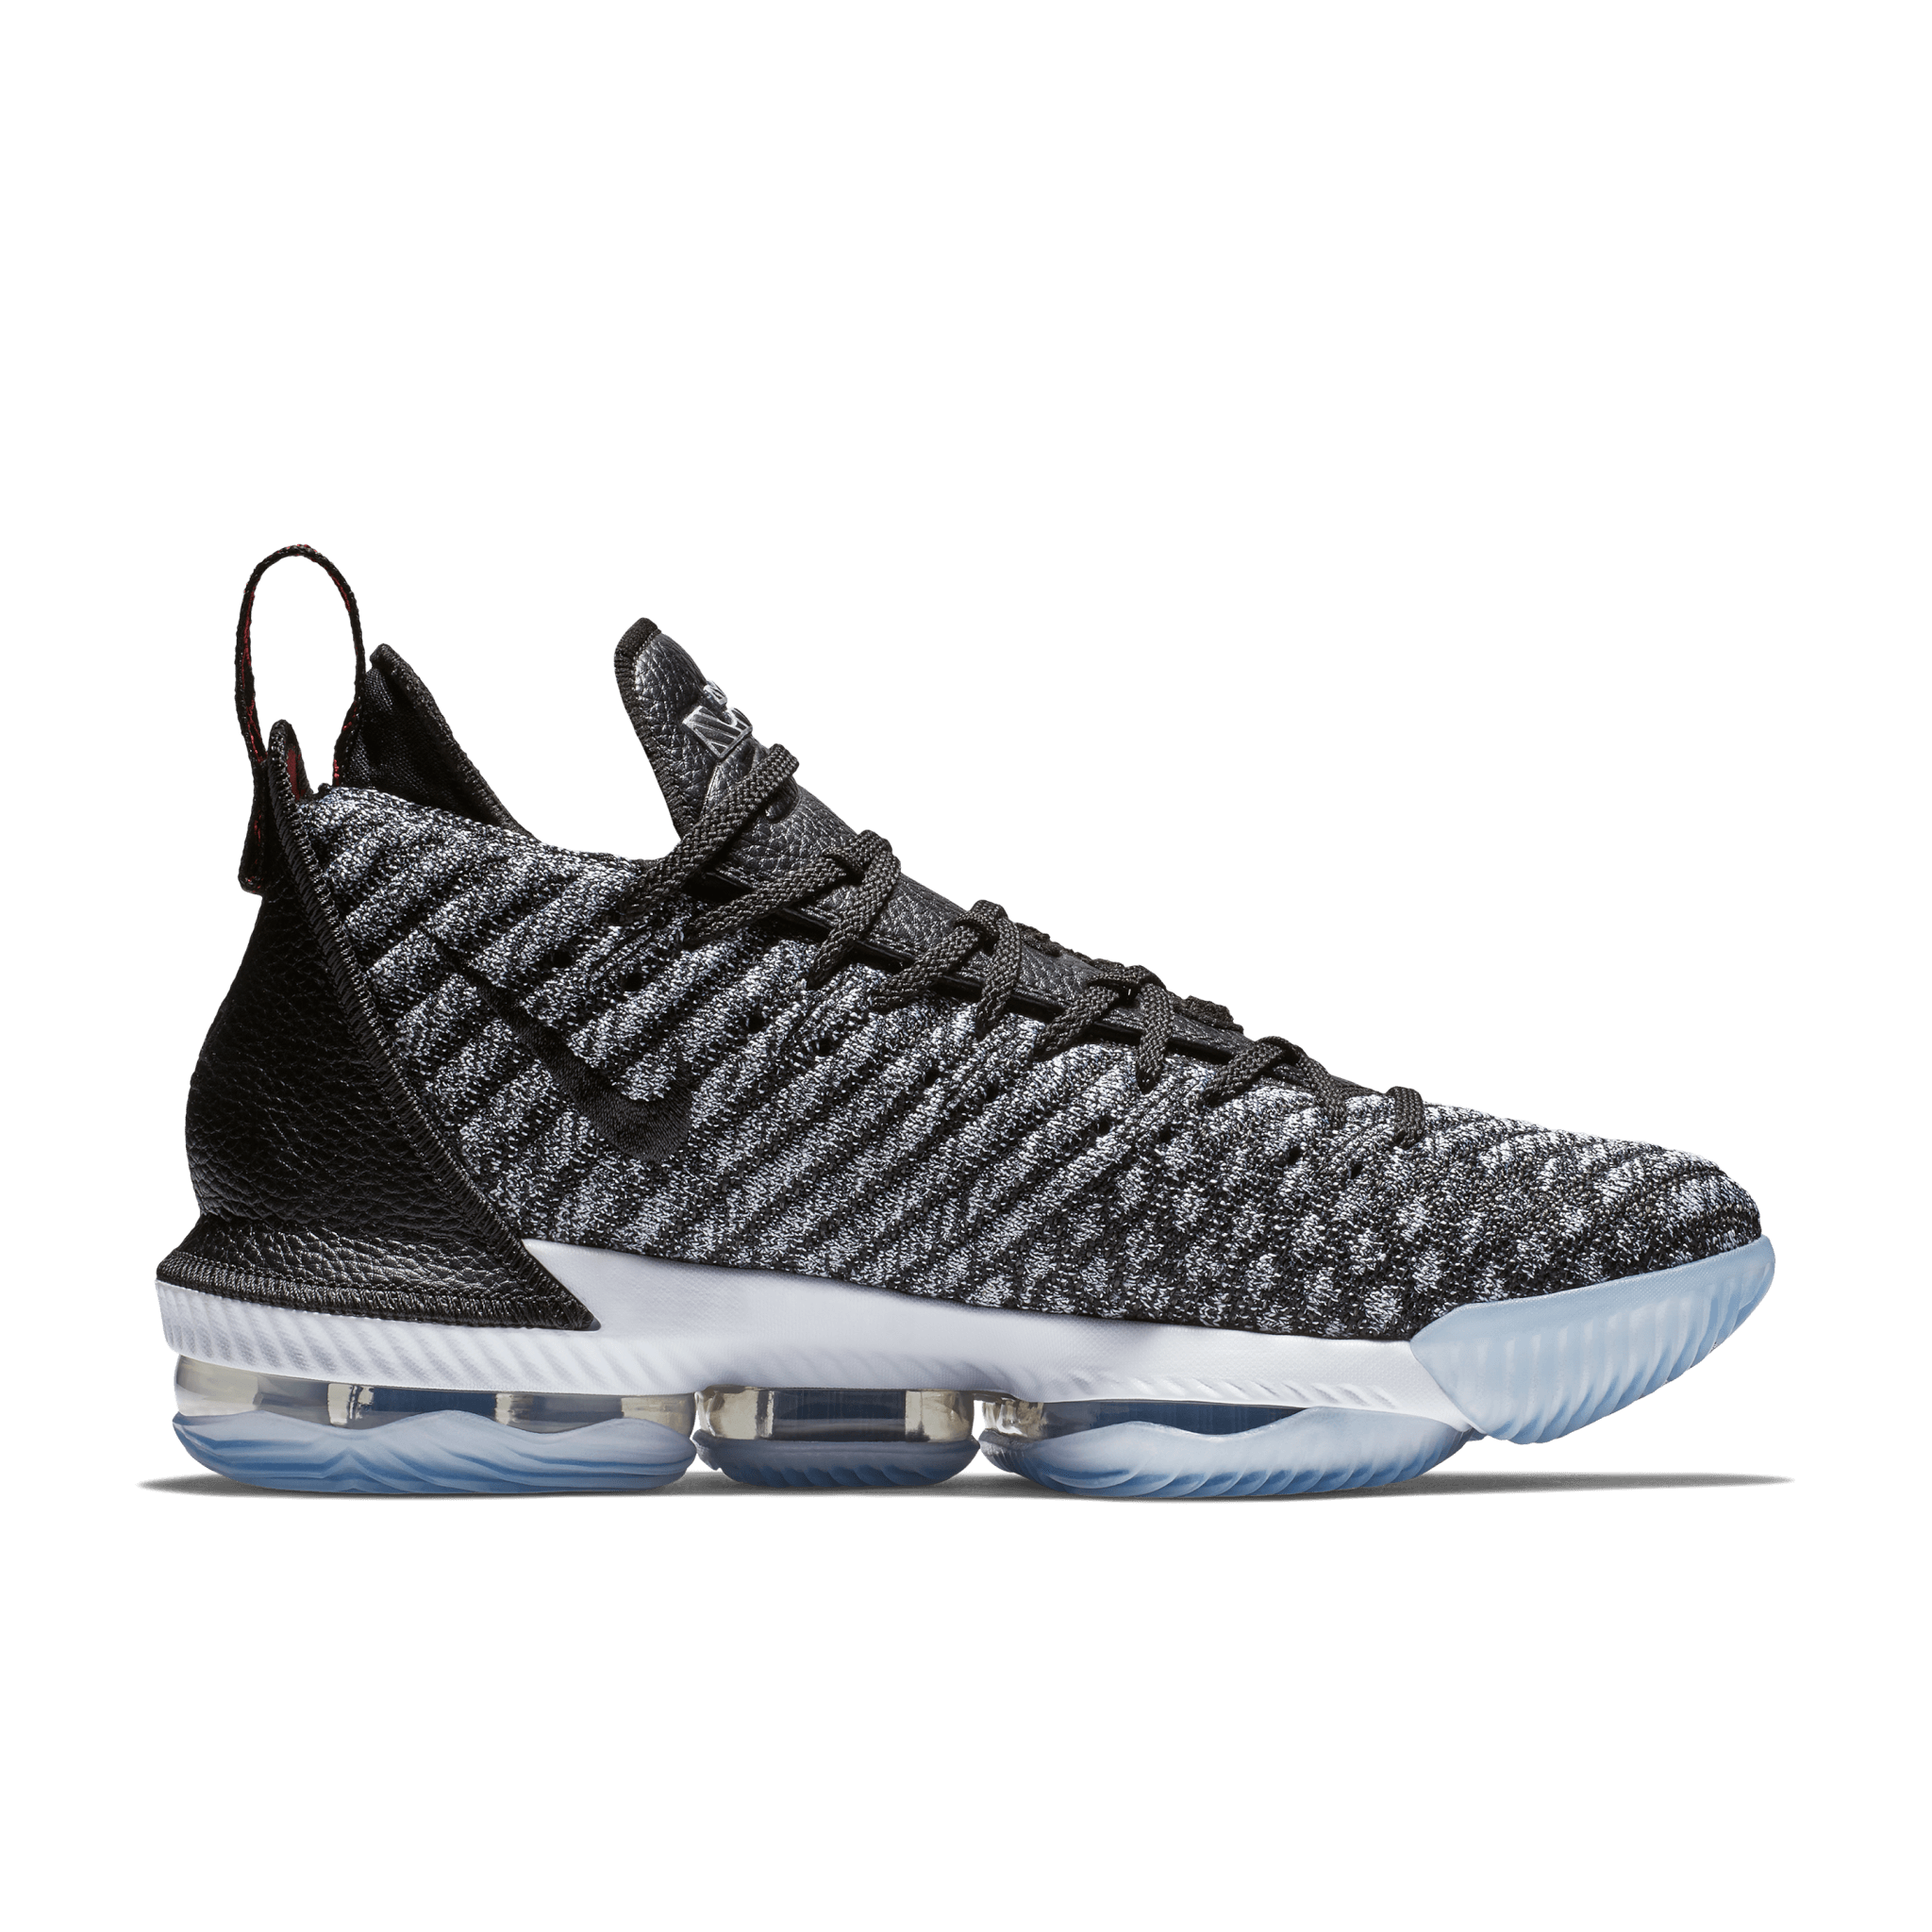 d75a8b037aa Nike Lebron 16 Performance Review